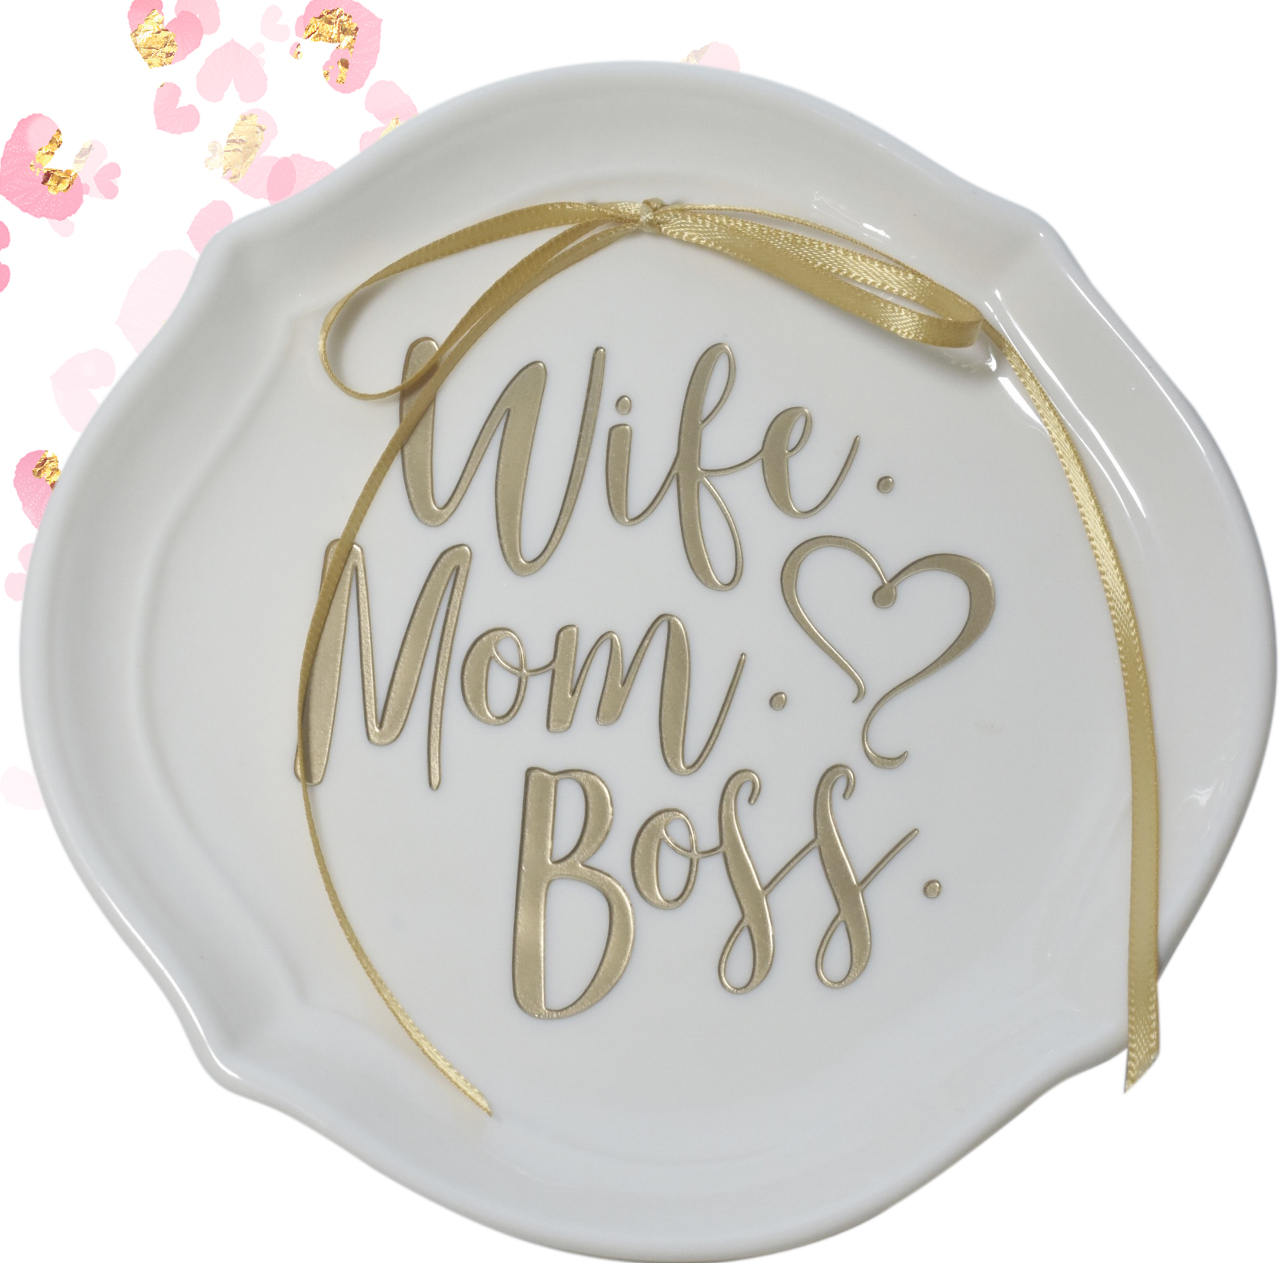 Wife Mom Boss Ring Dish, Trinket Dish, Mothers Day Gift, Boss Mom, Gift for Her, Rose Gold, Gift for Mom, Gift for Mom, Girlfriend Gift,